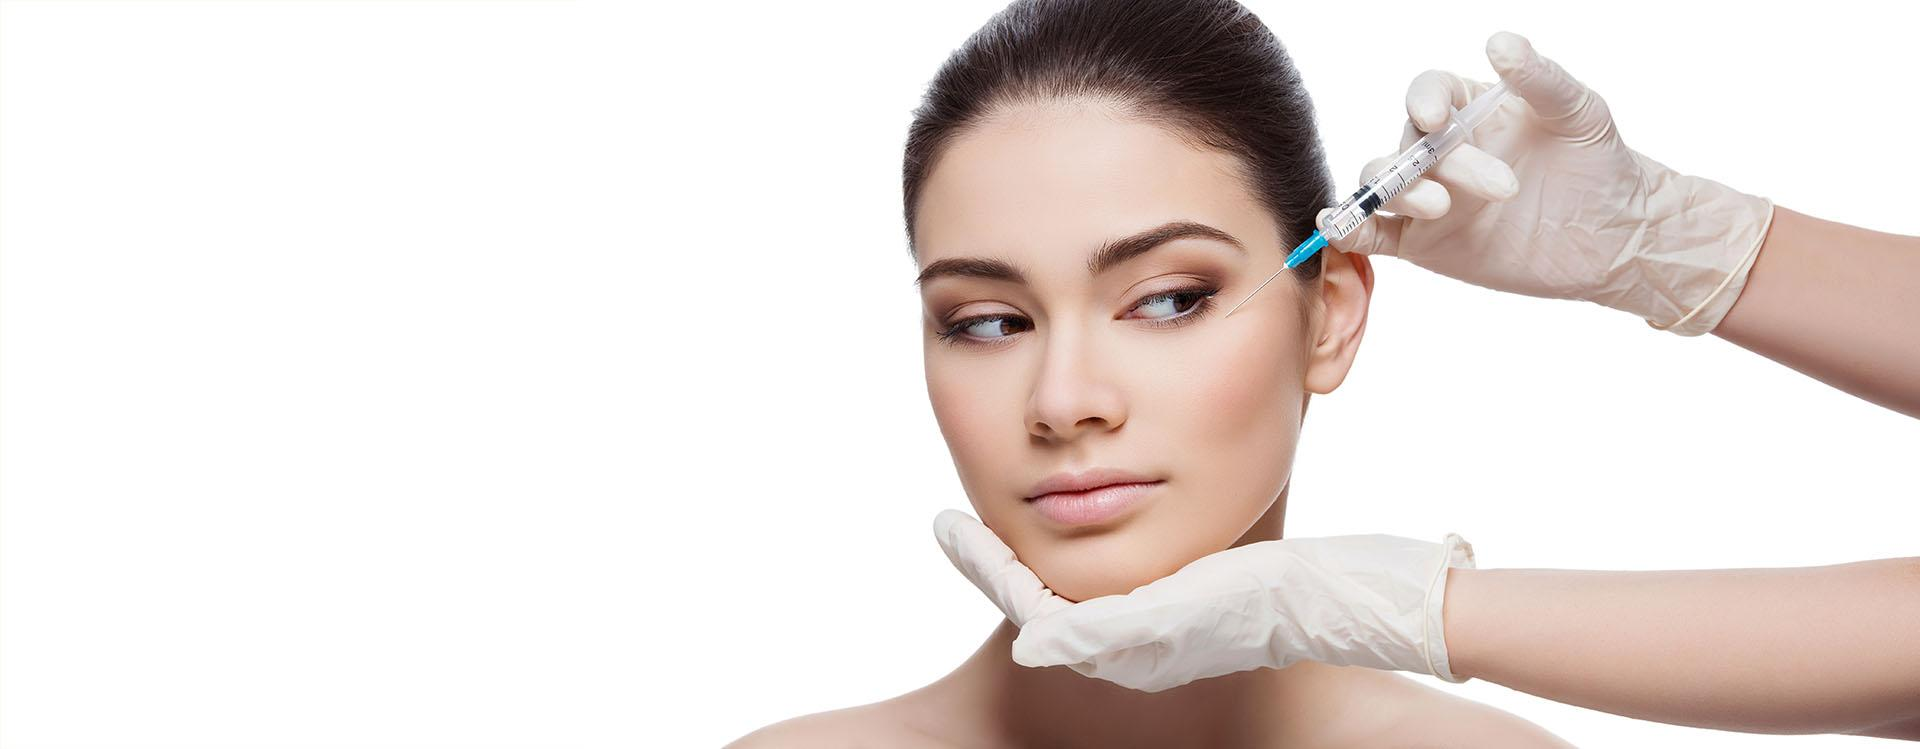 AGR | AGR Medical, wholesale for aesthetic beauty clinics